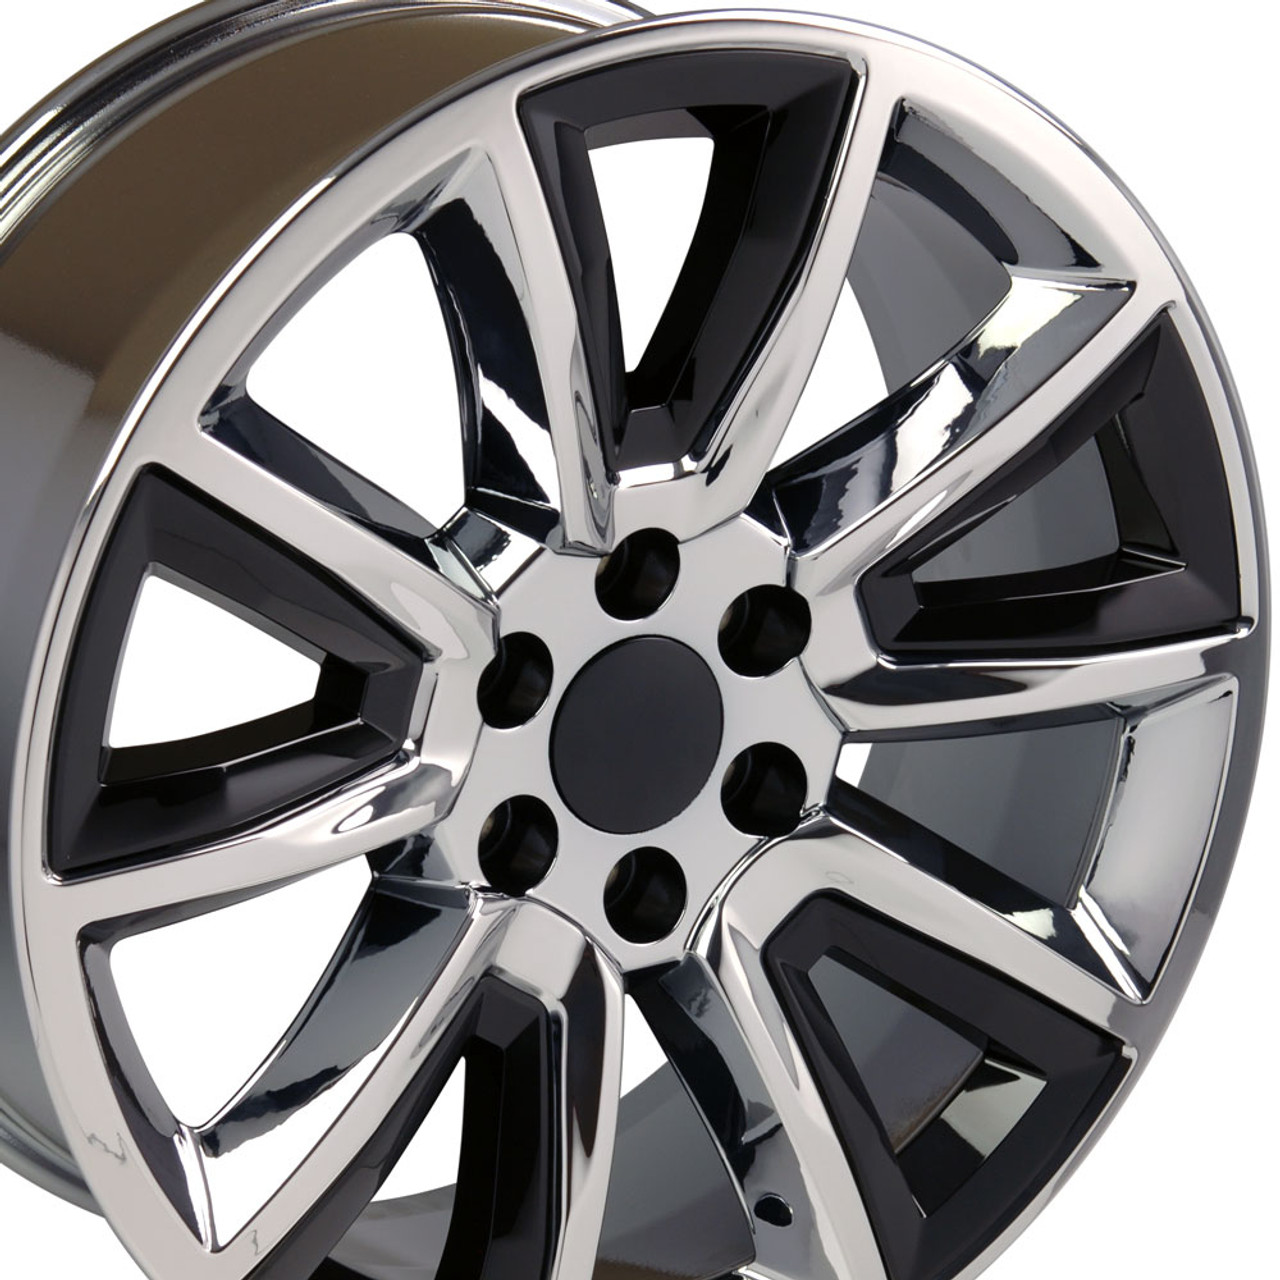 All Chevy chevy 22 rims 22